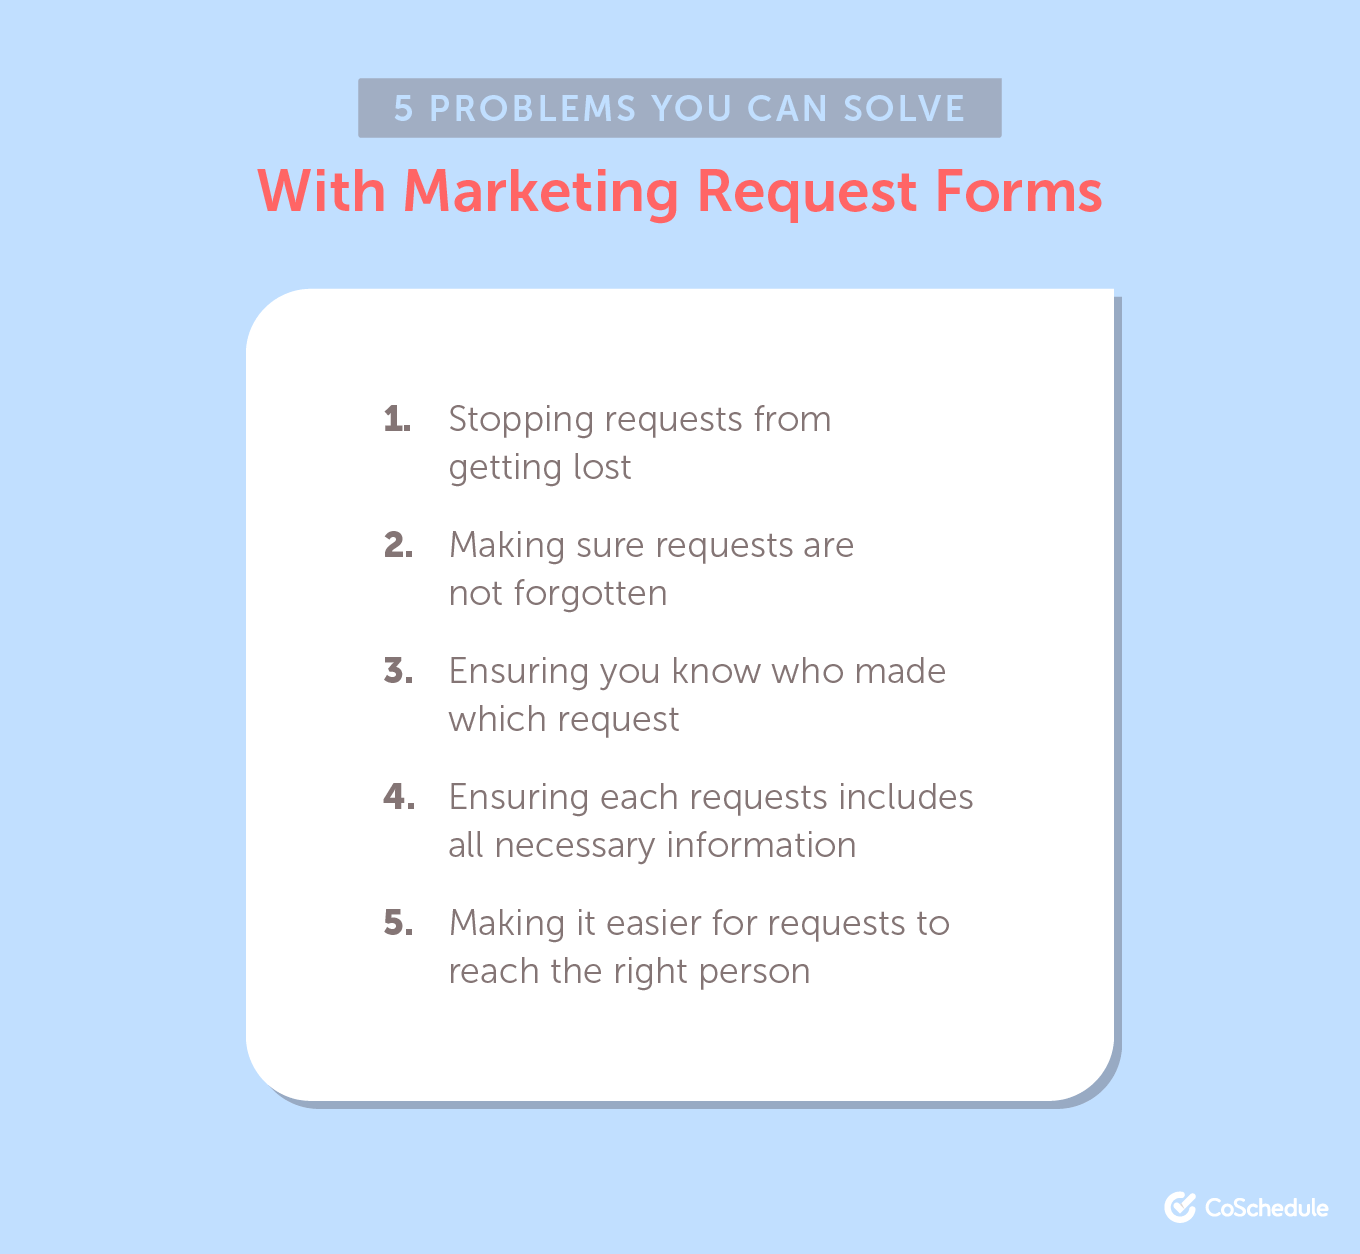 5 Problems You Can Solve With a Marketing Request Form